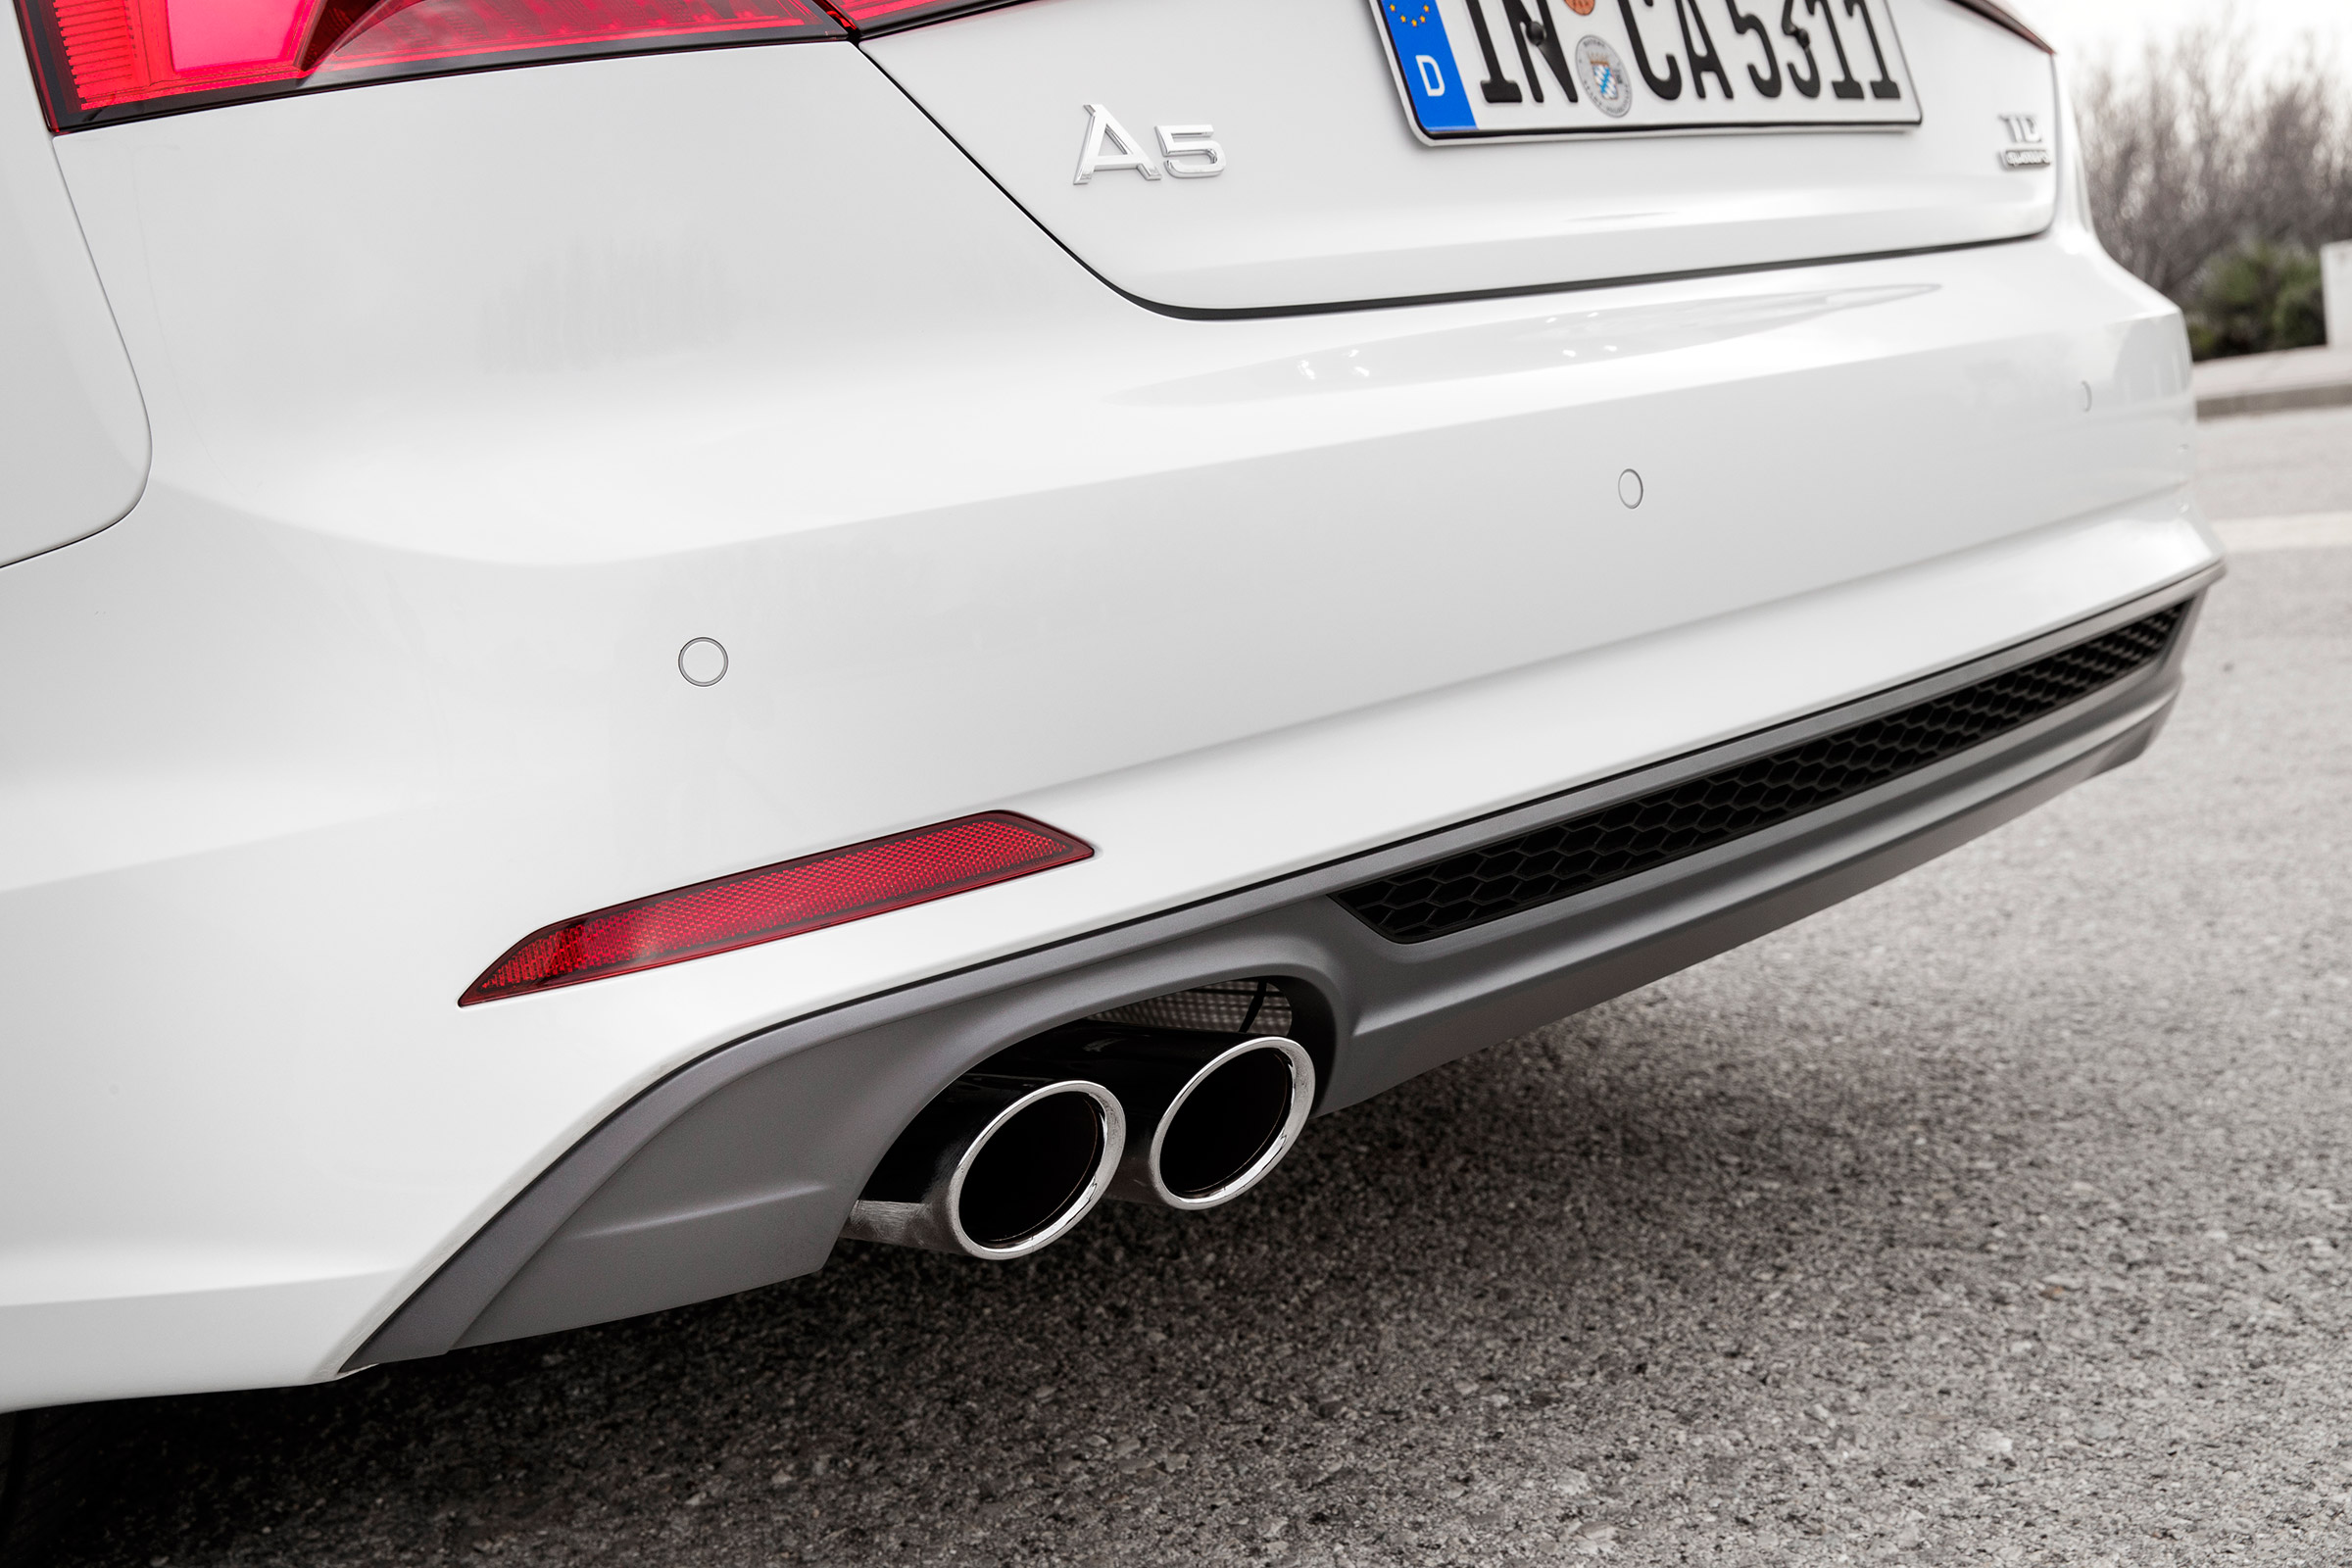 2017 Audi A5 Cabriolet Exterior View Rear Bumper And Muffler (Photo 3 of 18)